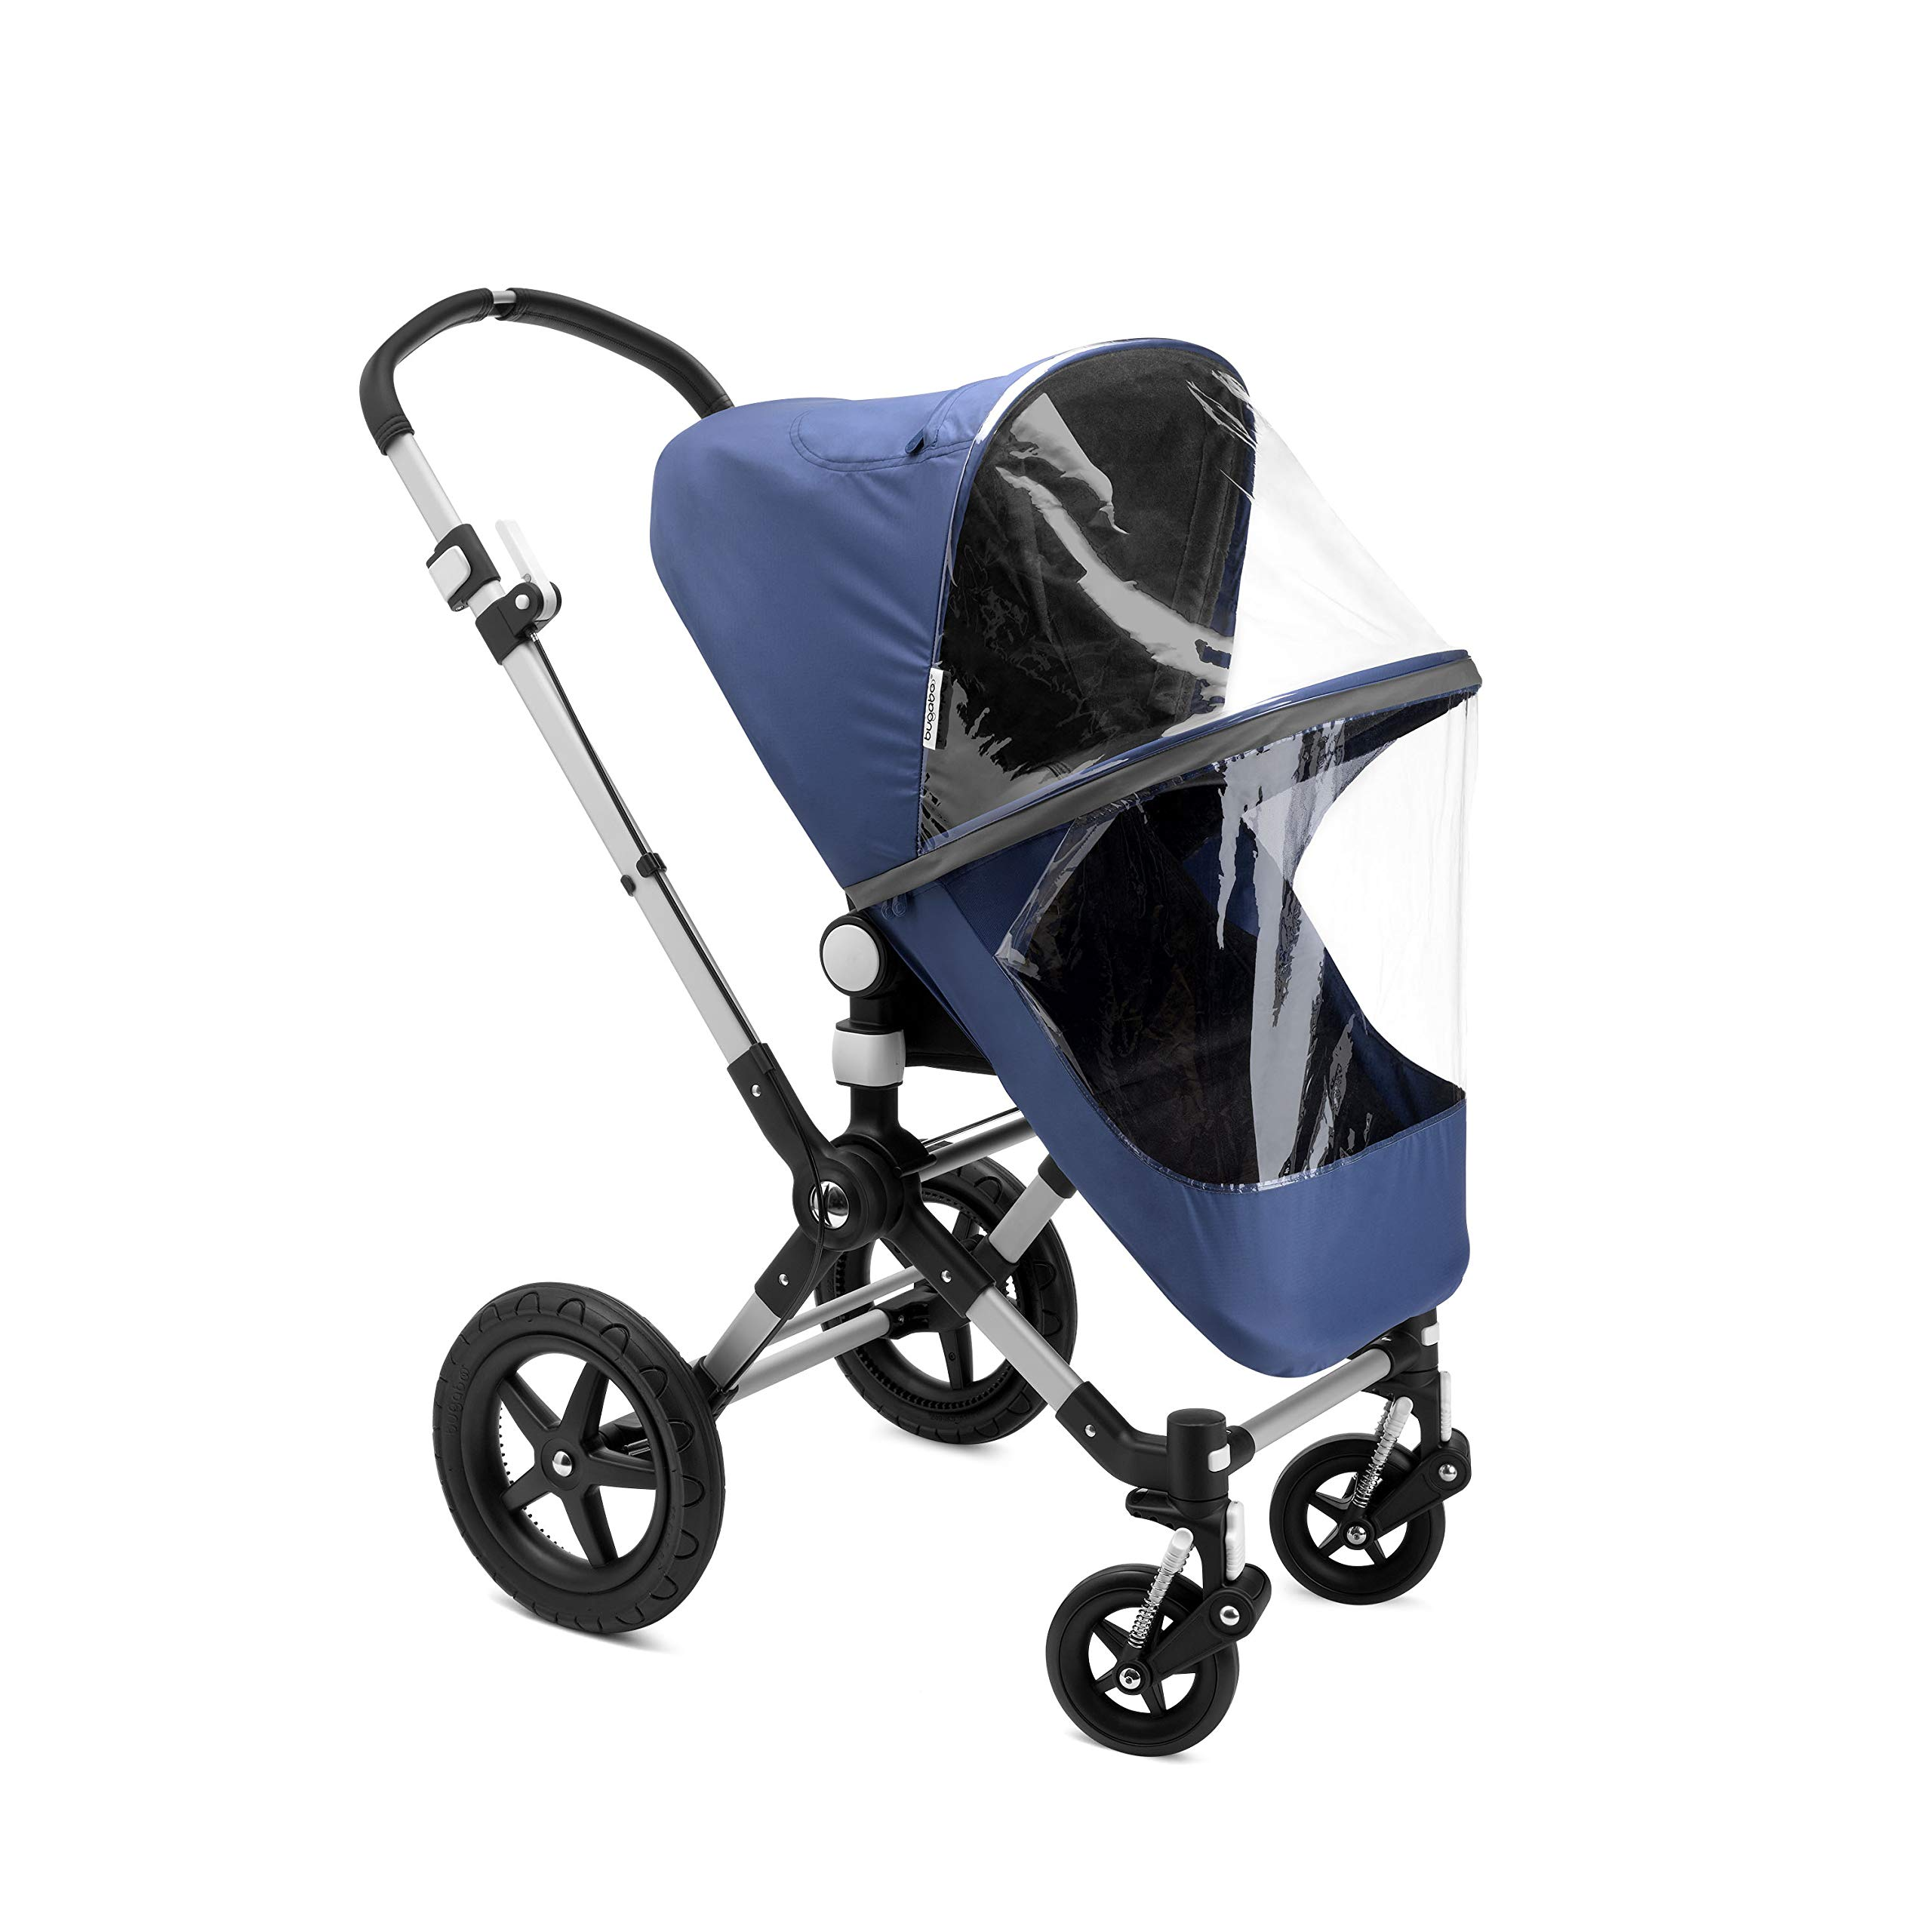 Bugaboo Cameleon High Performance Rain Cover, Sky Blue by Bugaboo